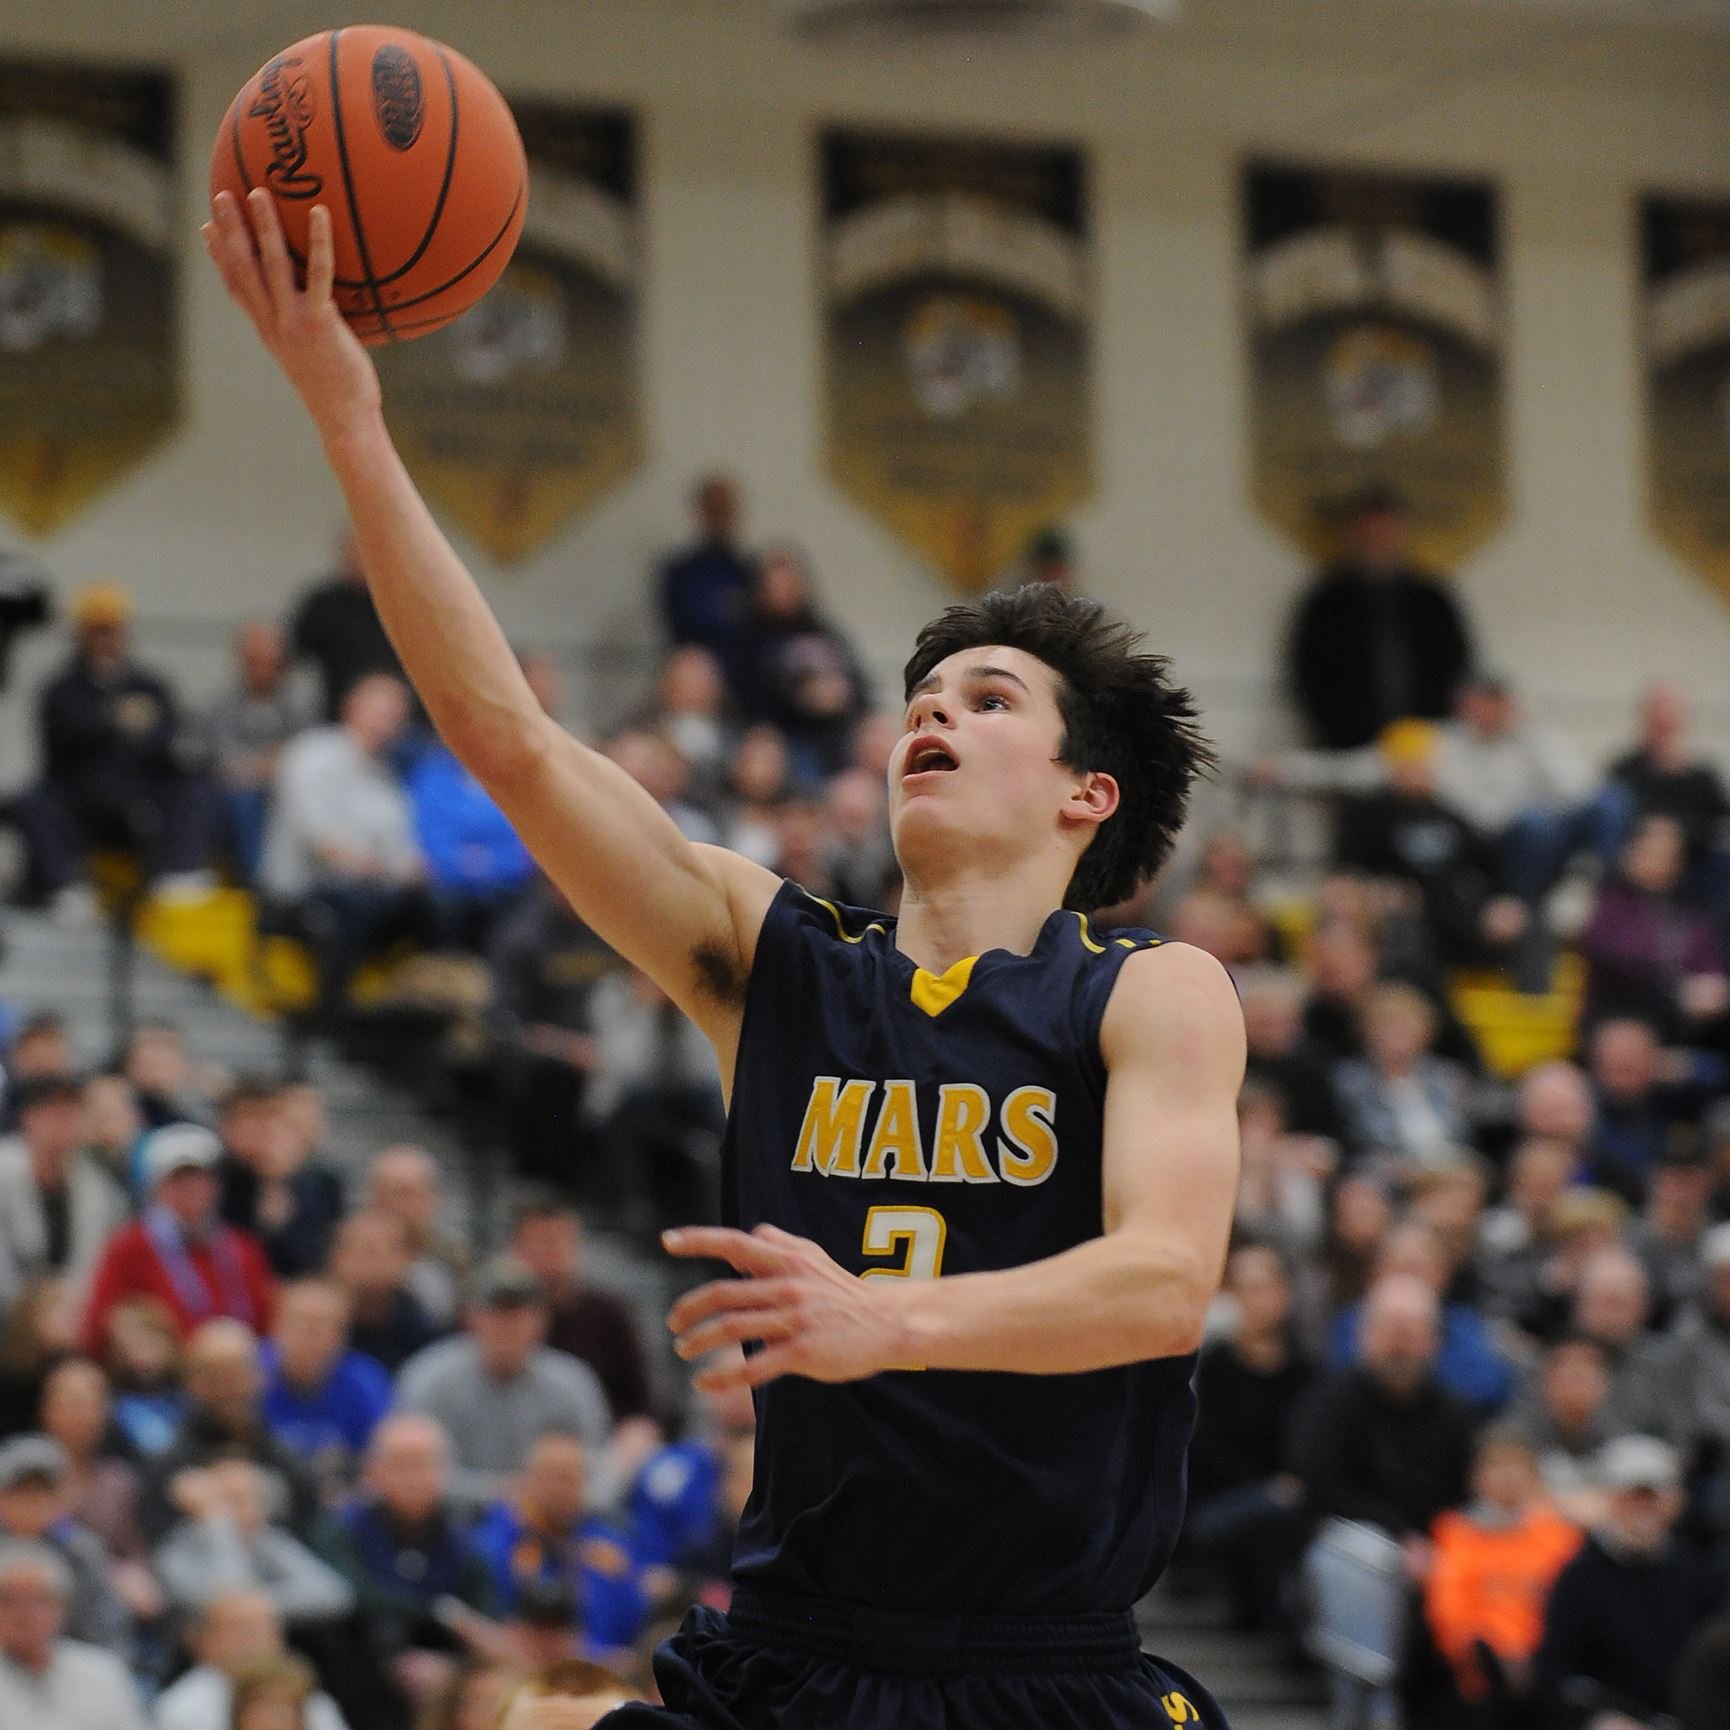 PIAA postpones second-round state basketball playoff games class=